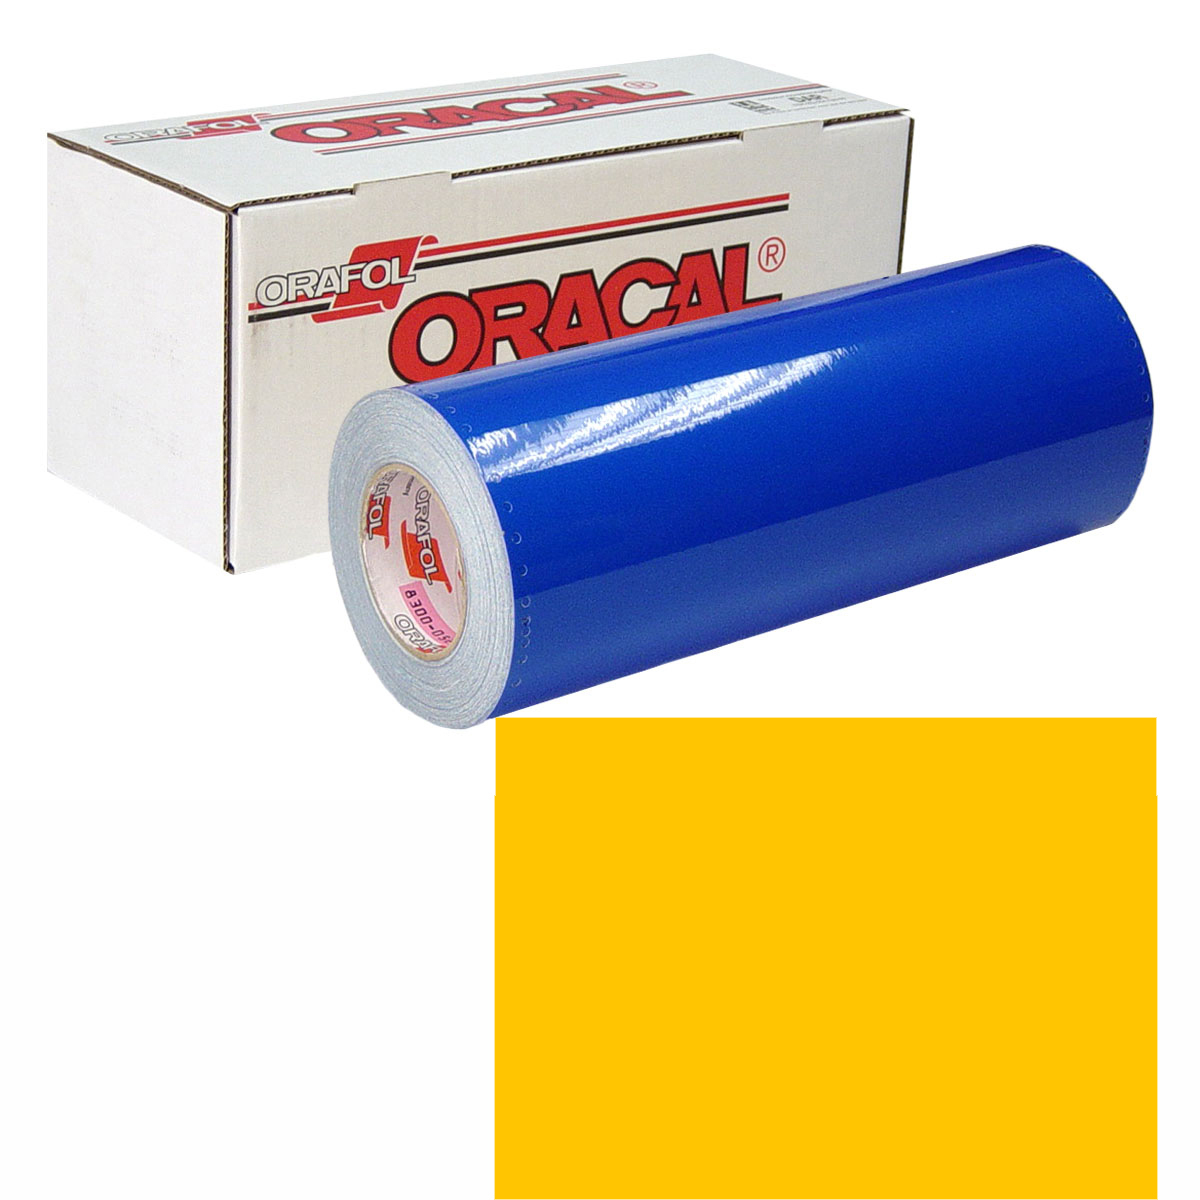 ORACAL 631 15in X 50yd 021 Yellow